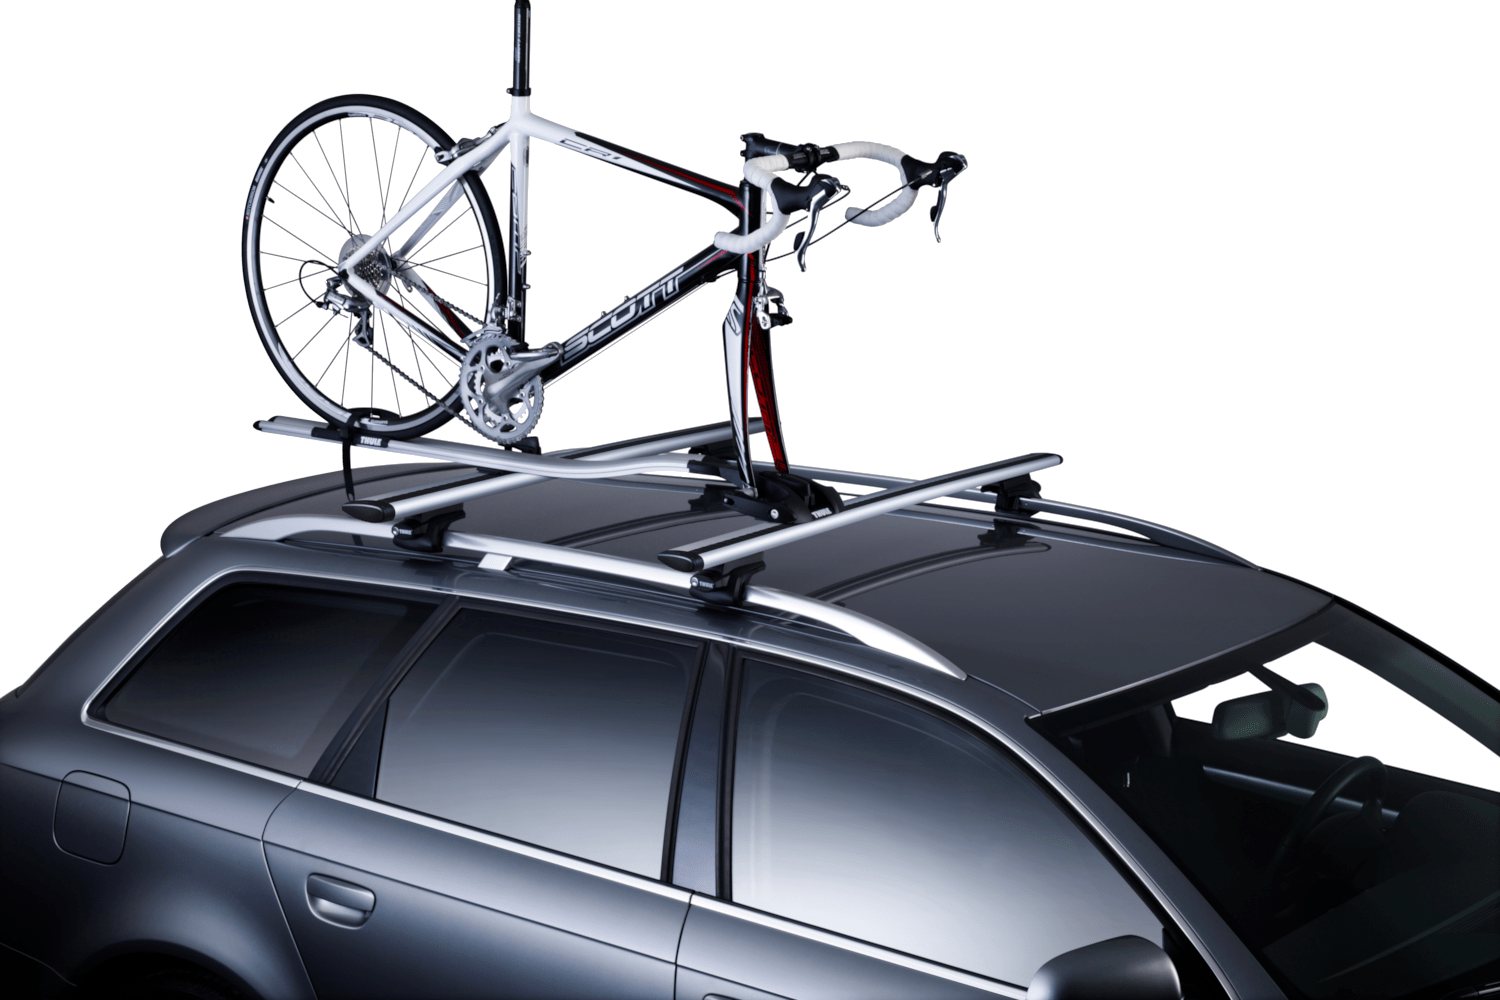 thule roof bike rack, thule roof bike racks, thule outride bike rack